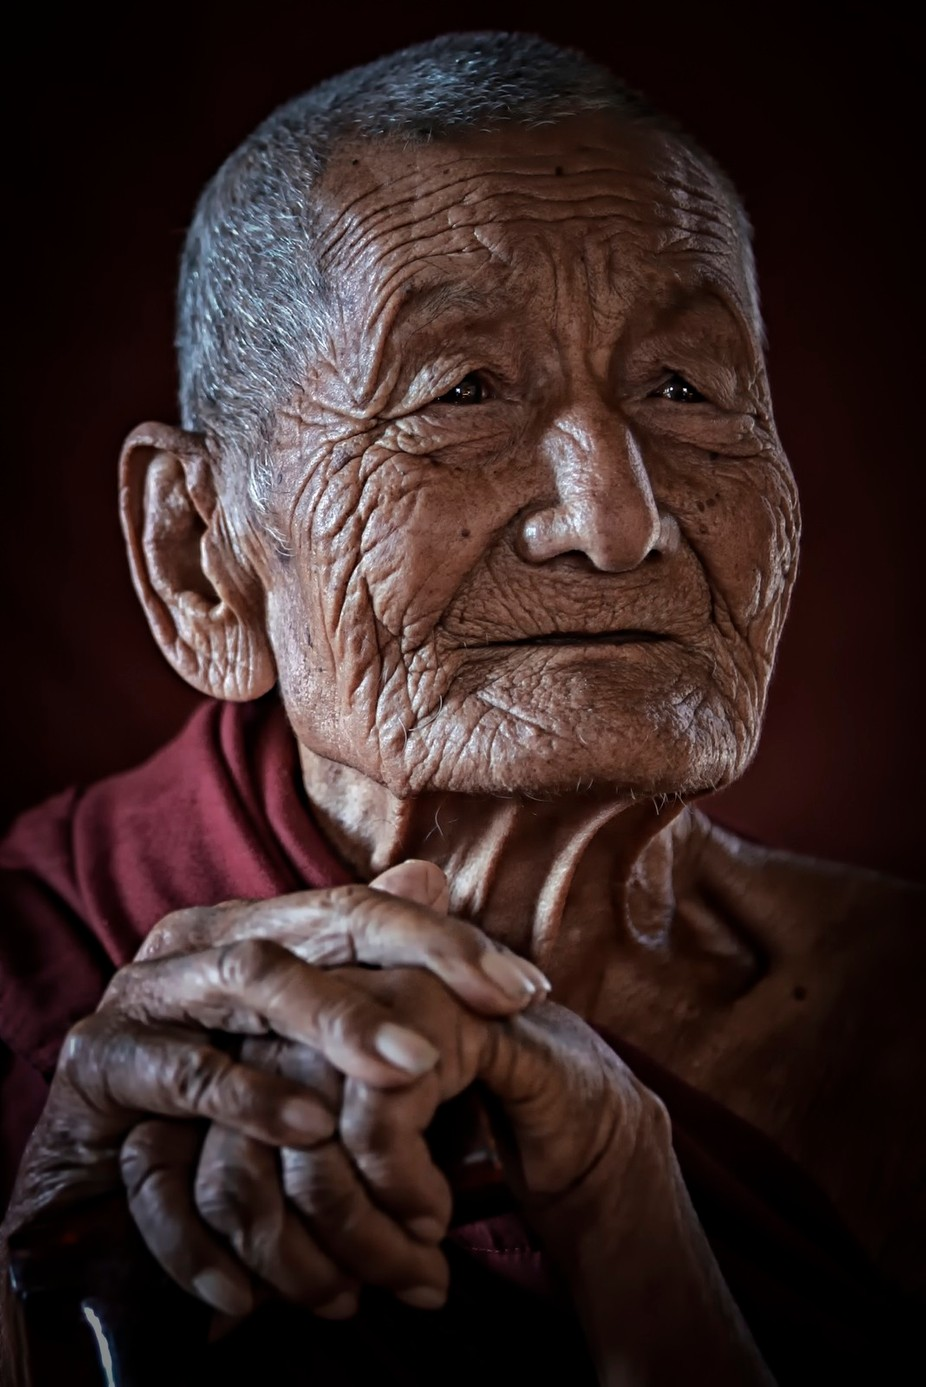 Old buddhist monk  by kevinkaung - Cultures of the World Photo Contest